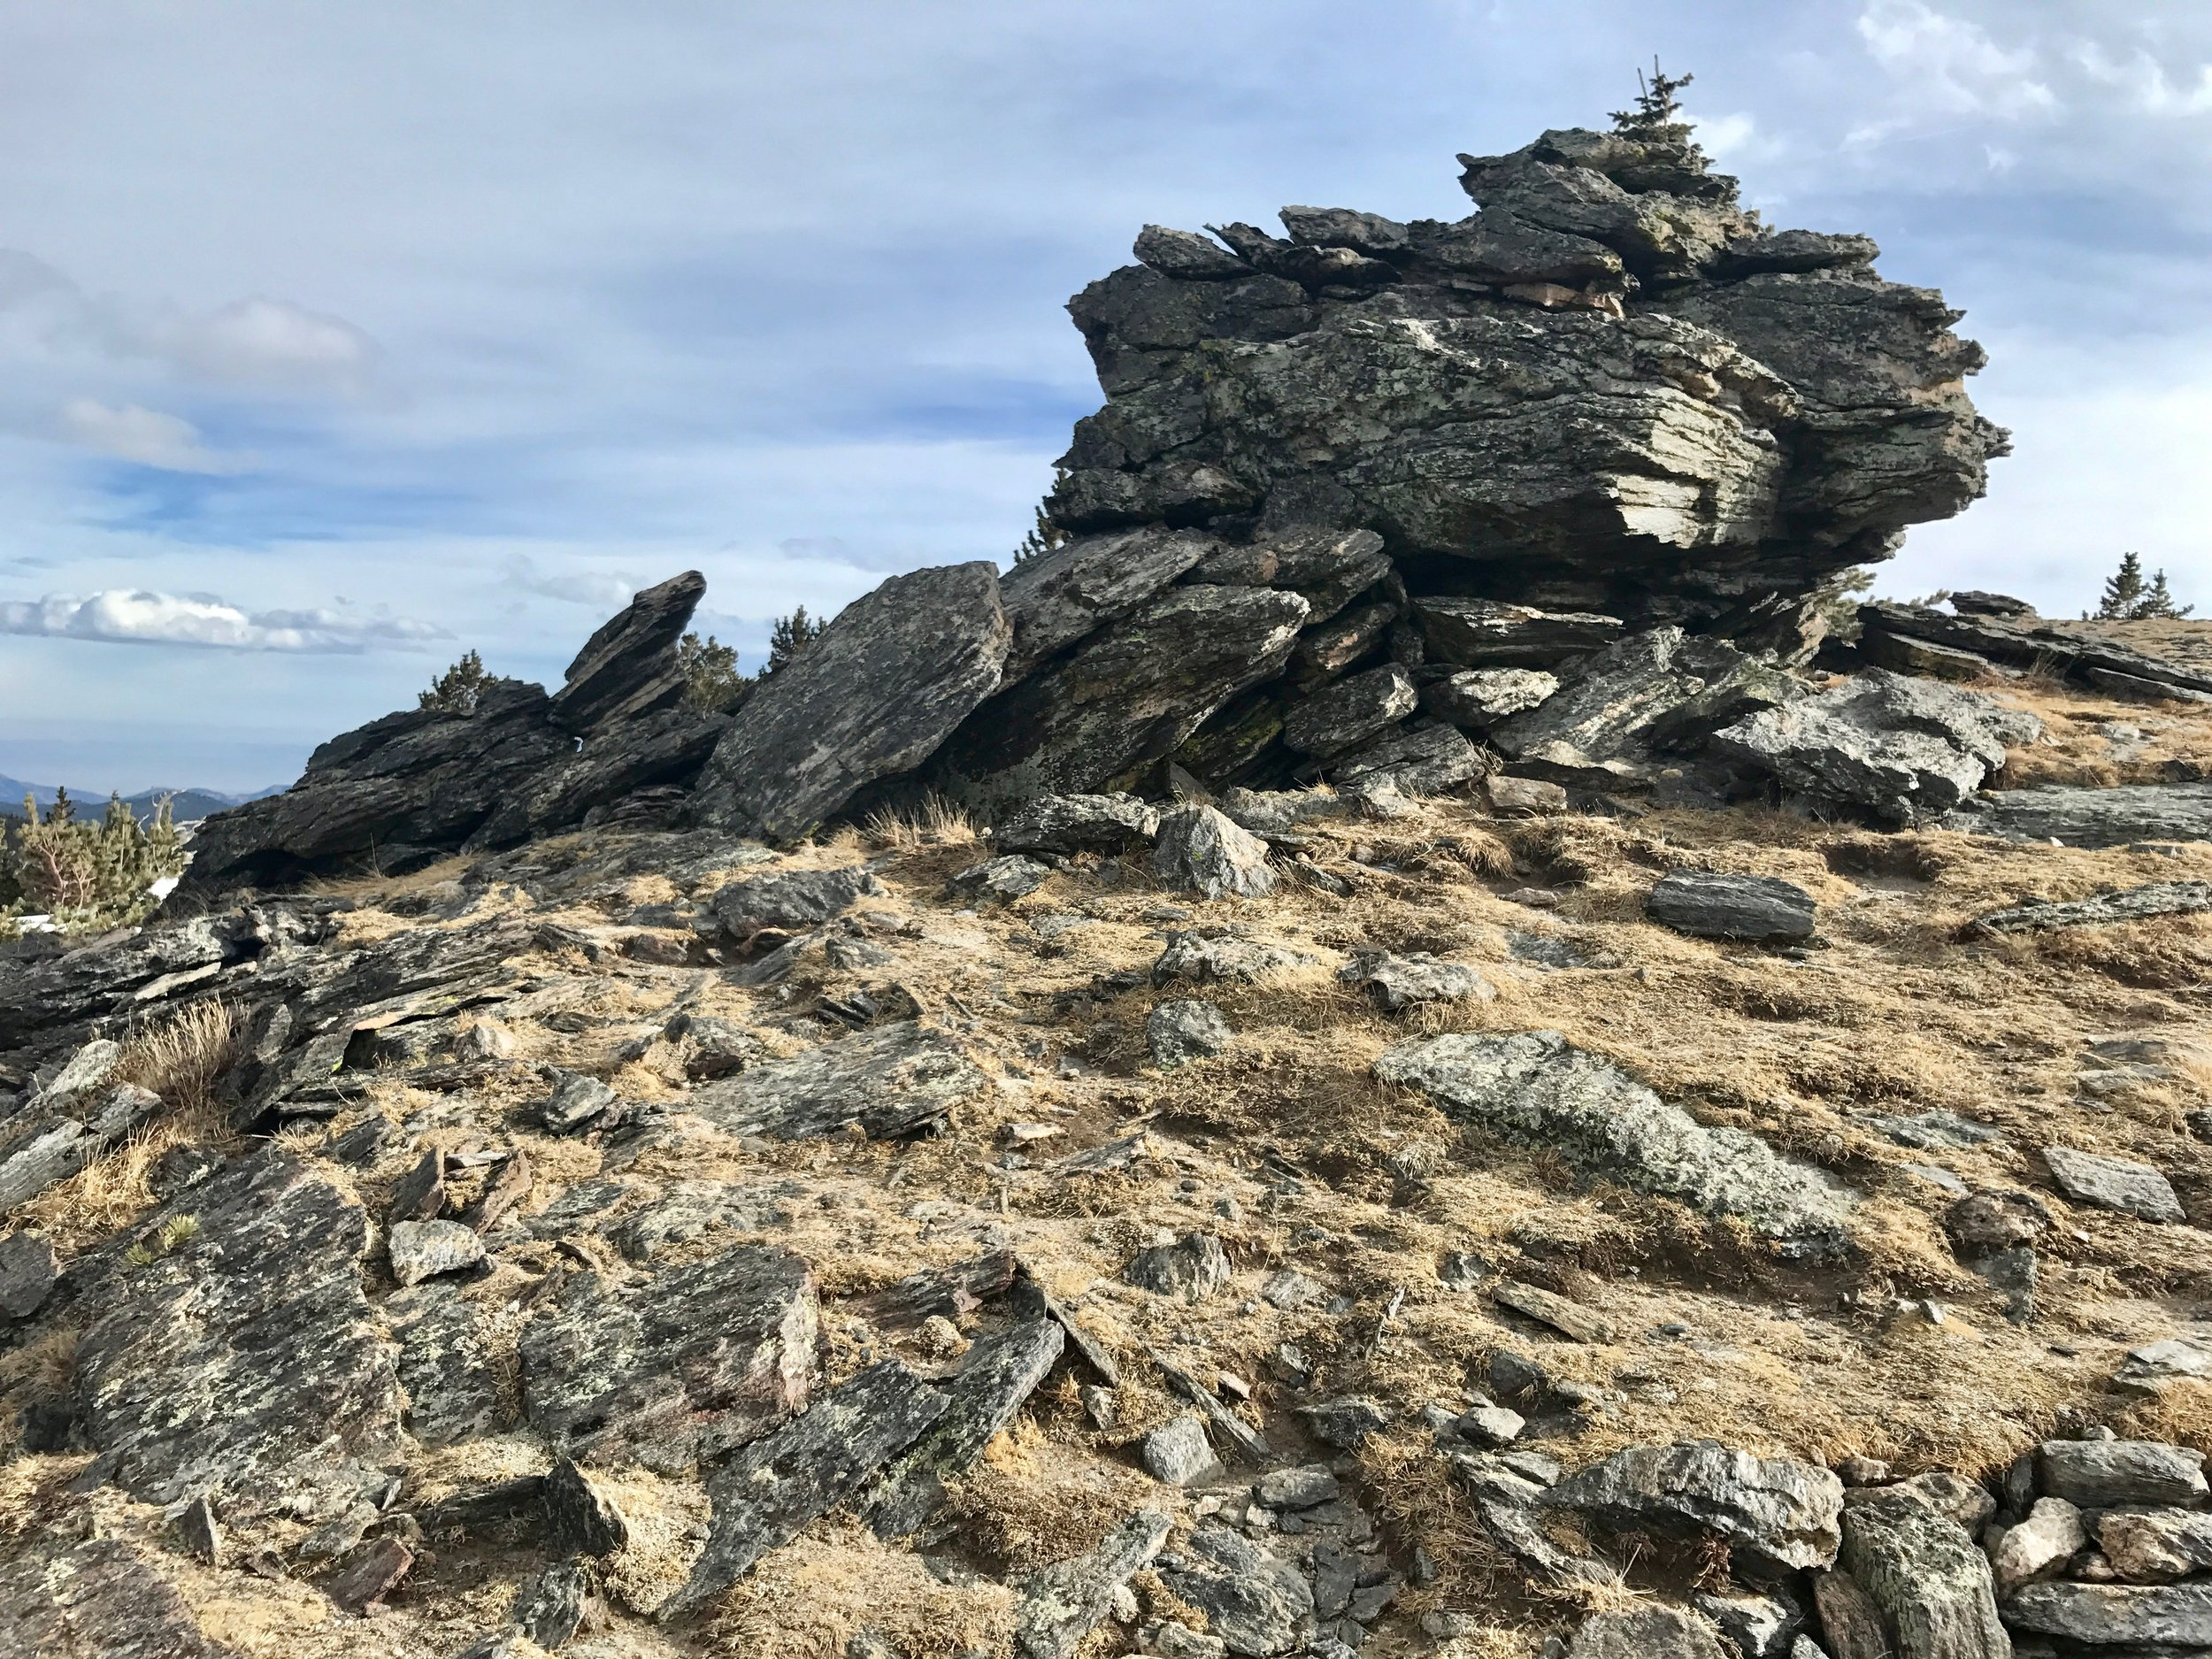 One of the unique rock outcrops approaching the summit.